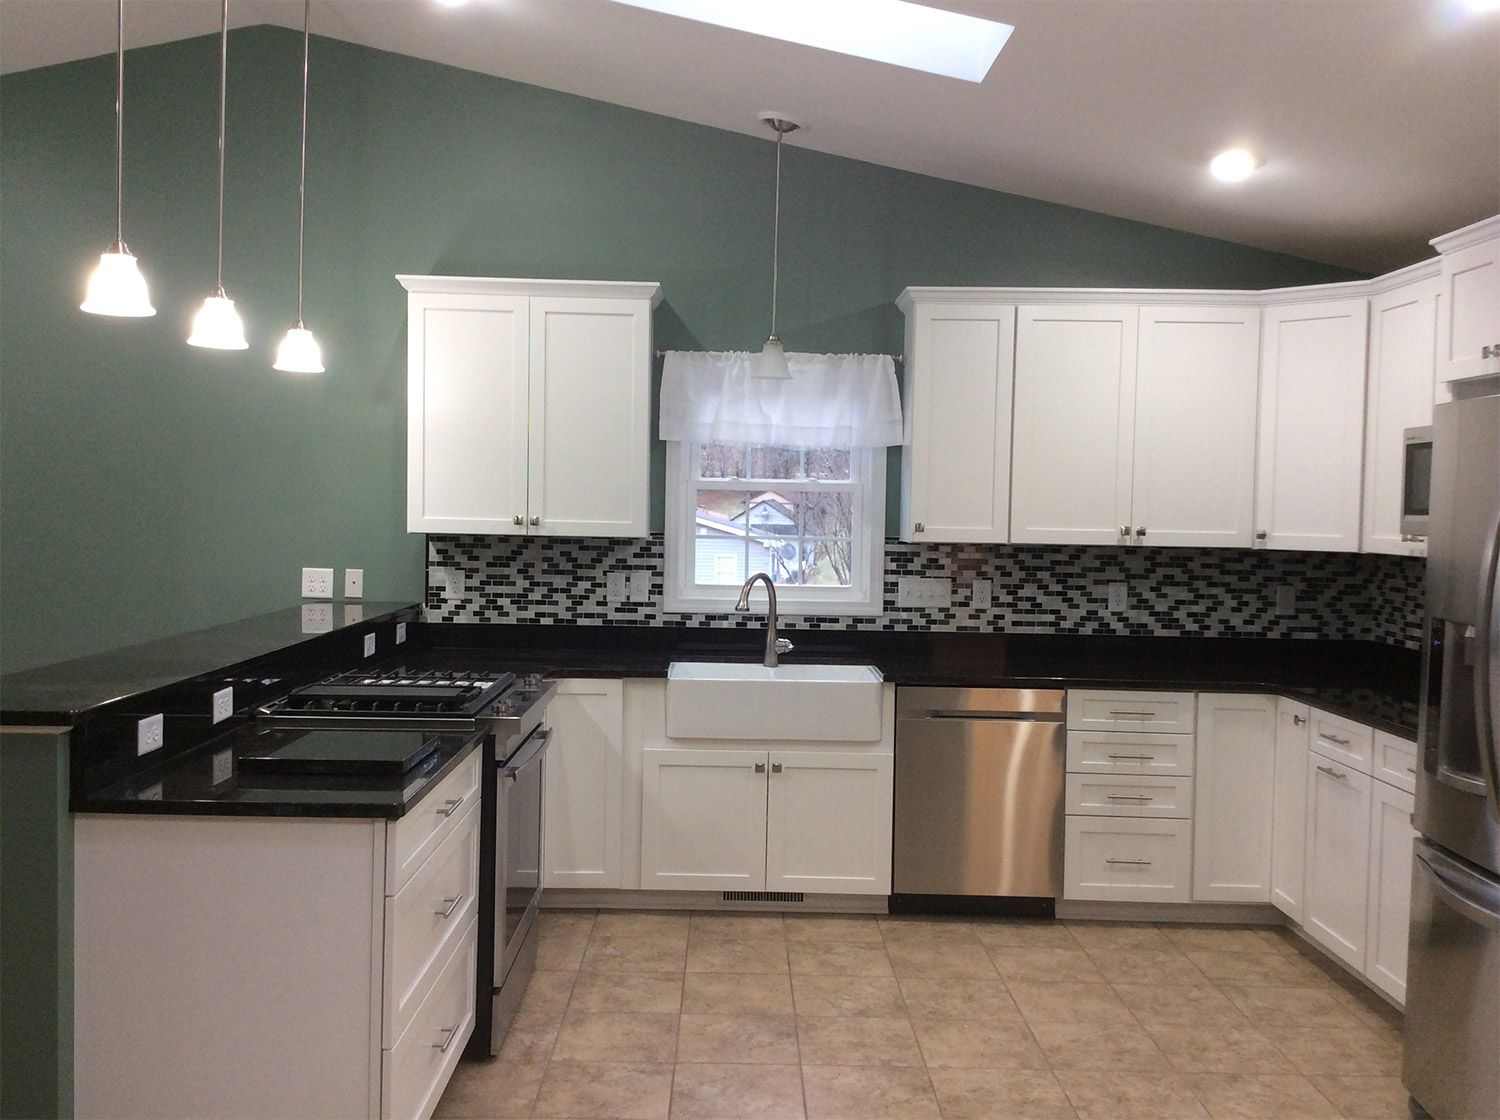 Kitchen renovations by Built Right Construction